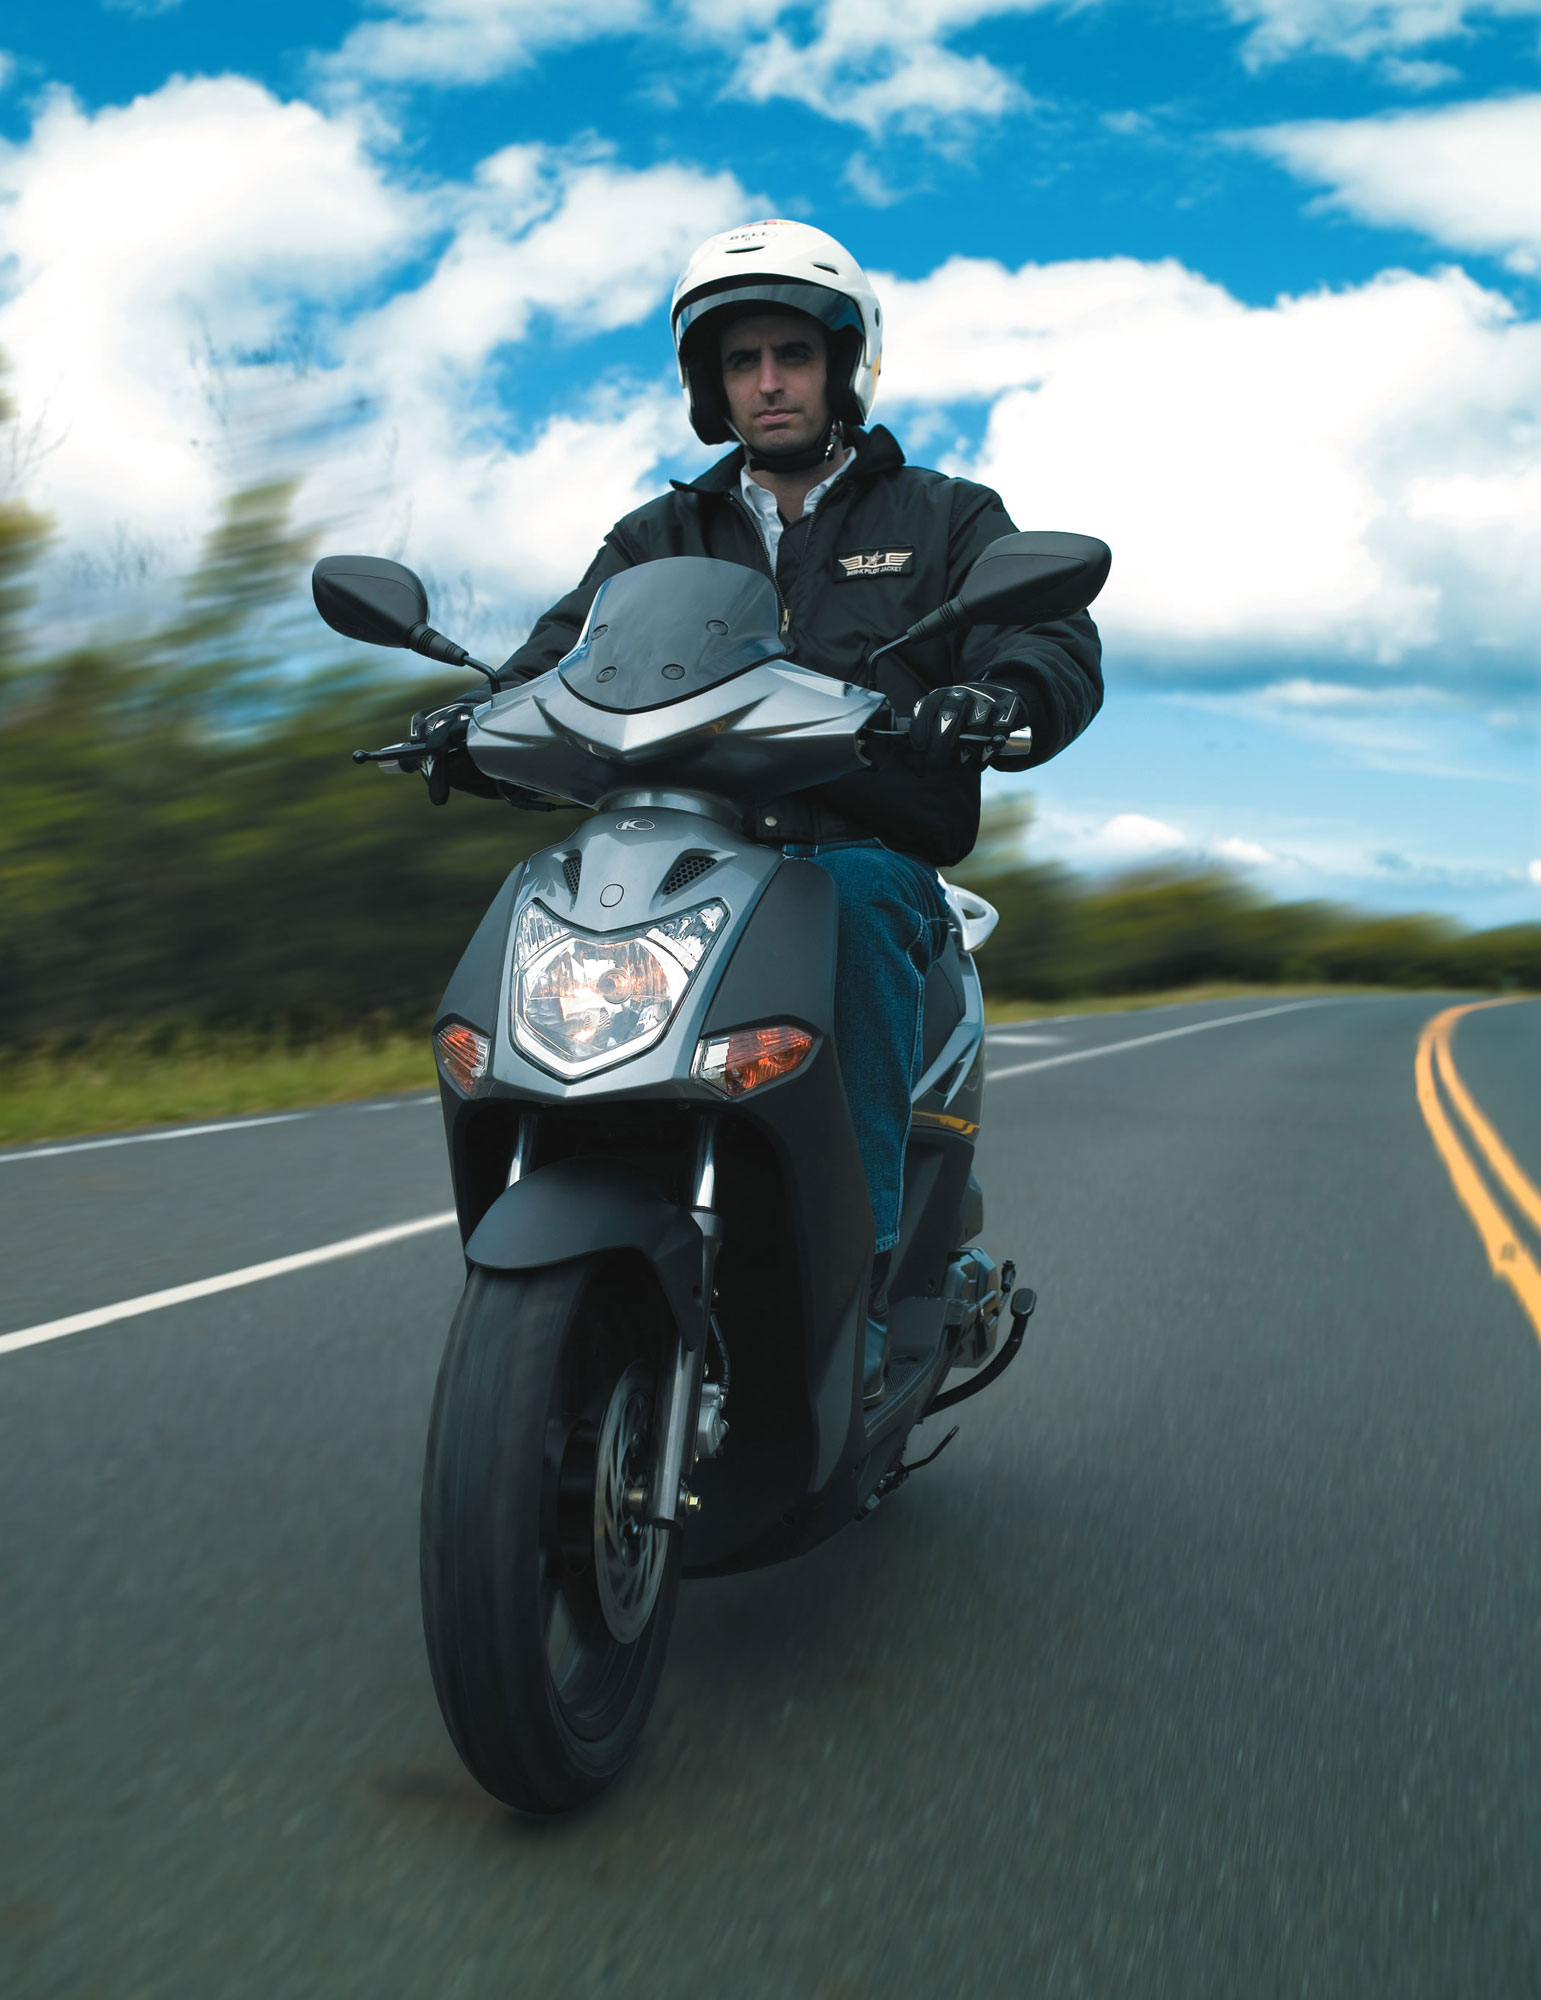 2012 Kymco Agility City 50 4T Motorcycle Insurance Information